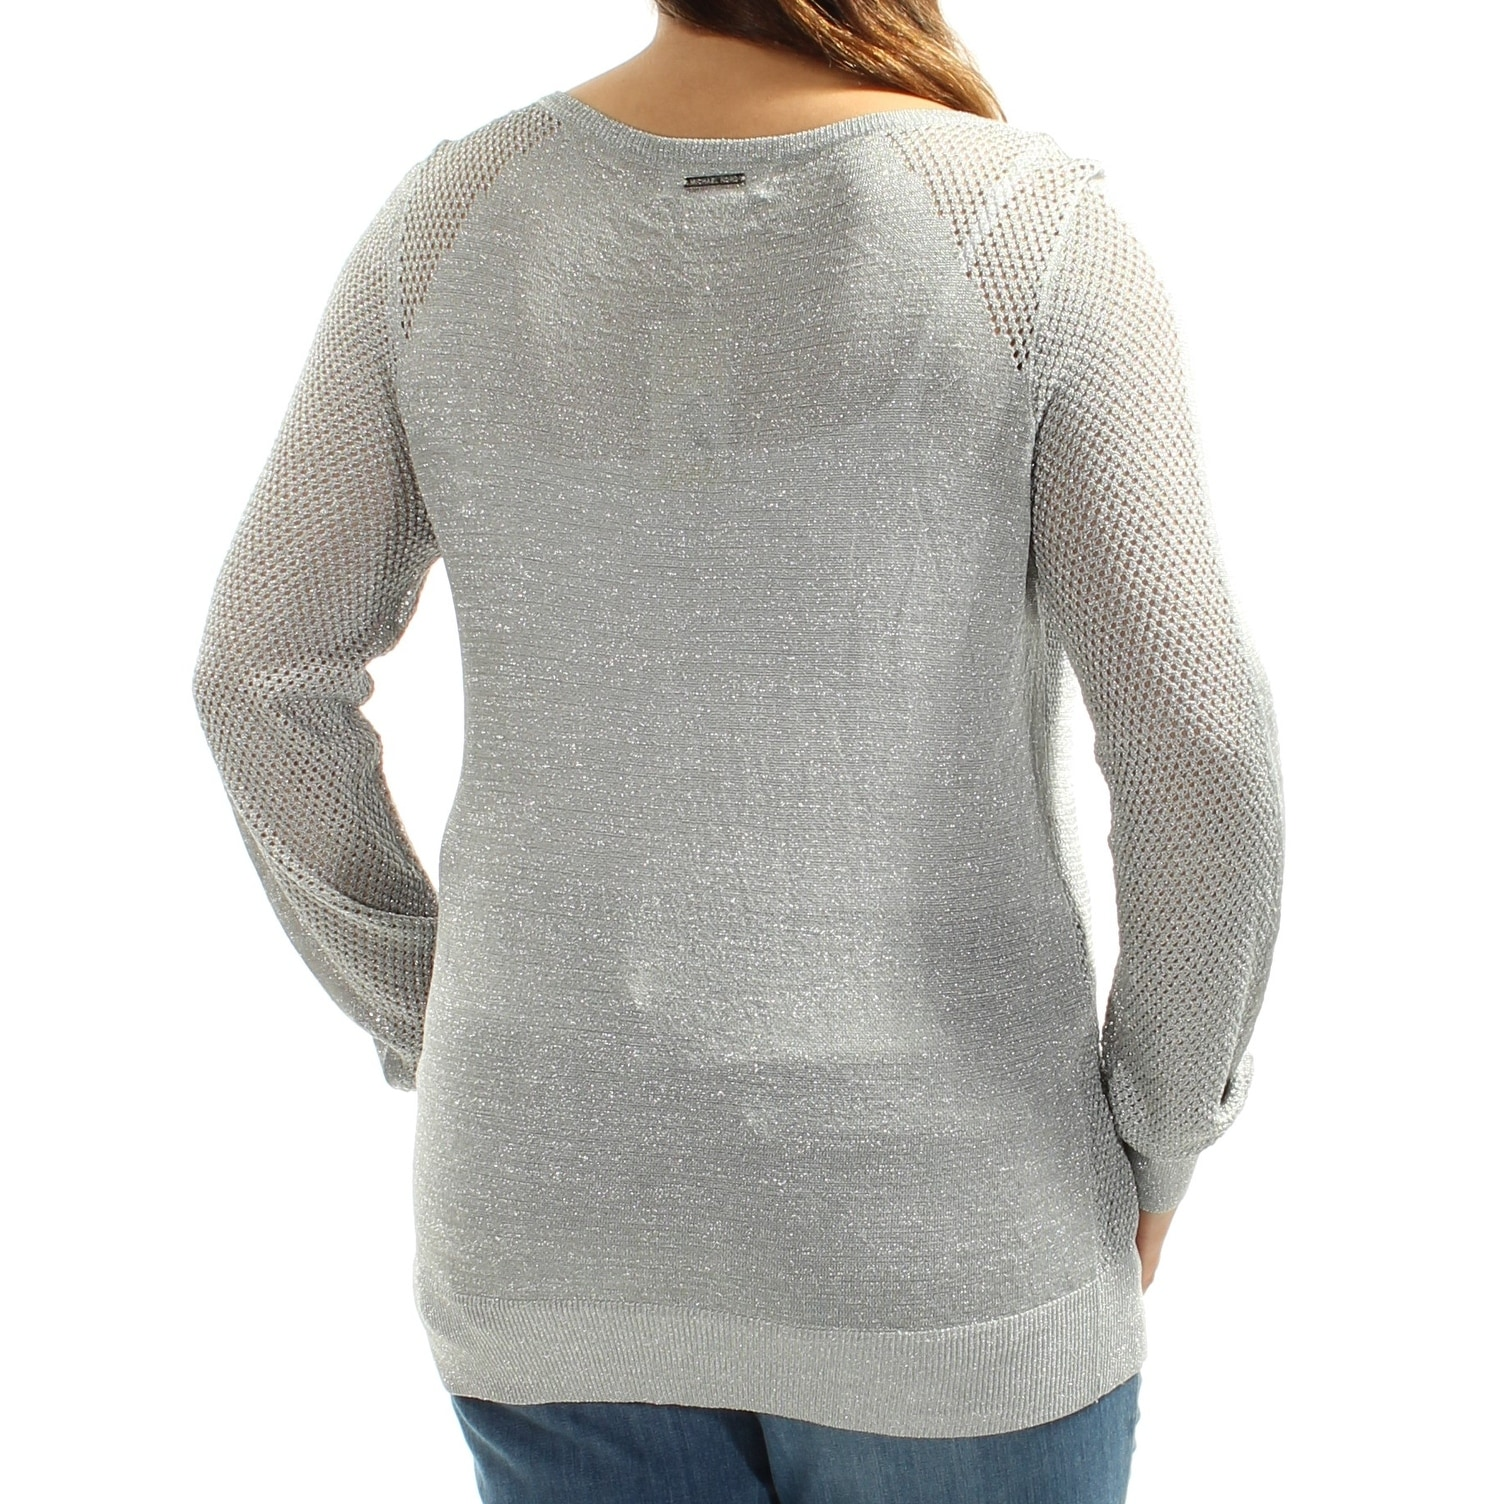 54e31433b6 Shop MICHAEL KORS Womens Silver Eyelet Long Sleeve Jewel Neck Sweater Size   XL - On Sale - Free Shipping On Orders Over  45 - Overstock - 21512086